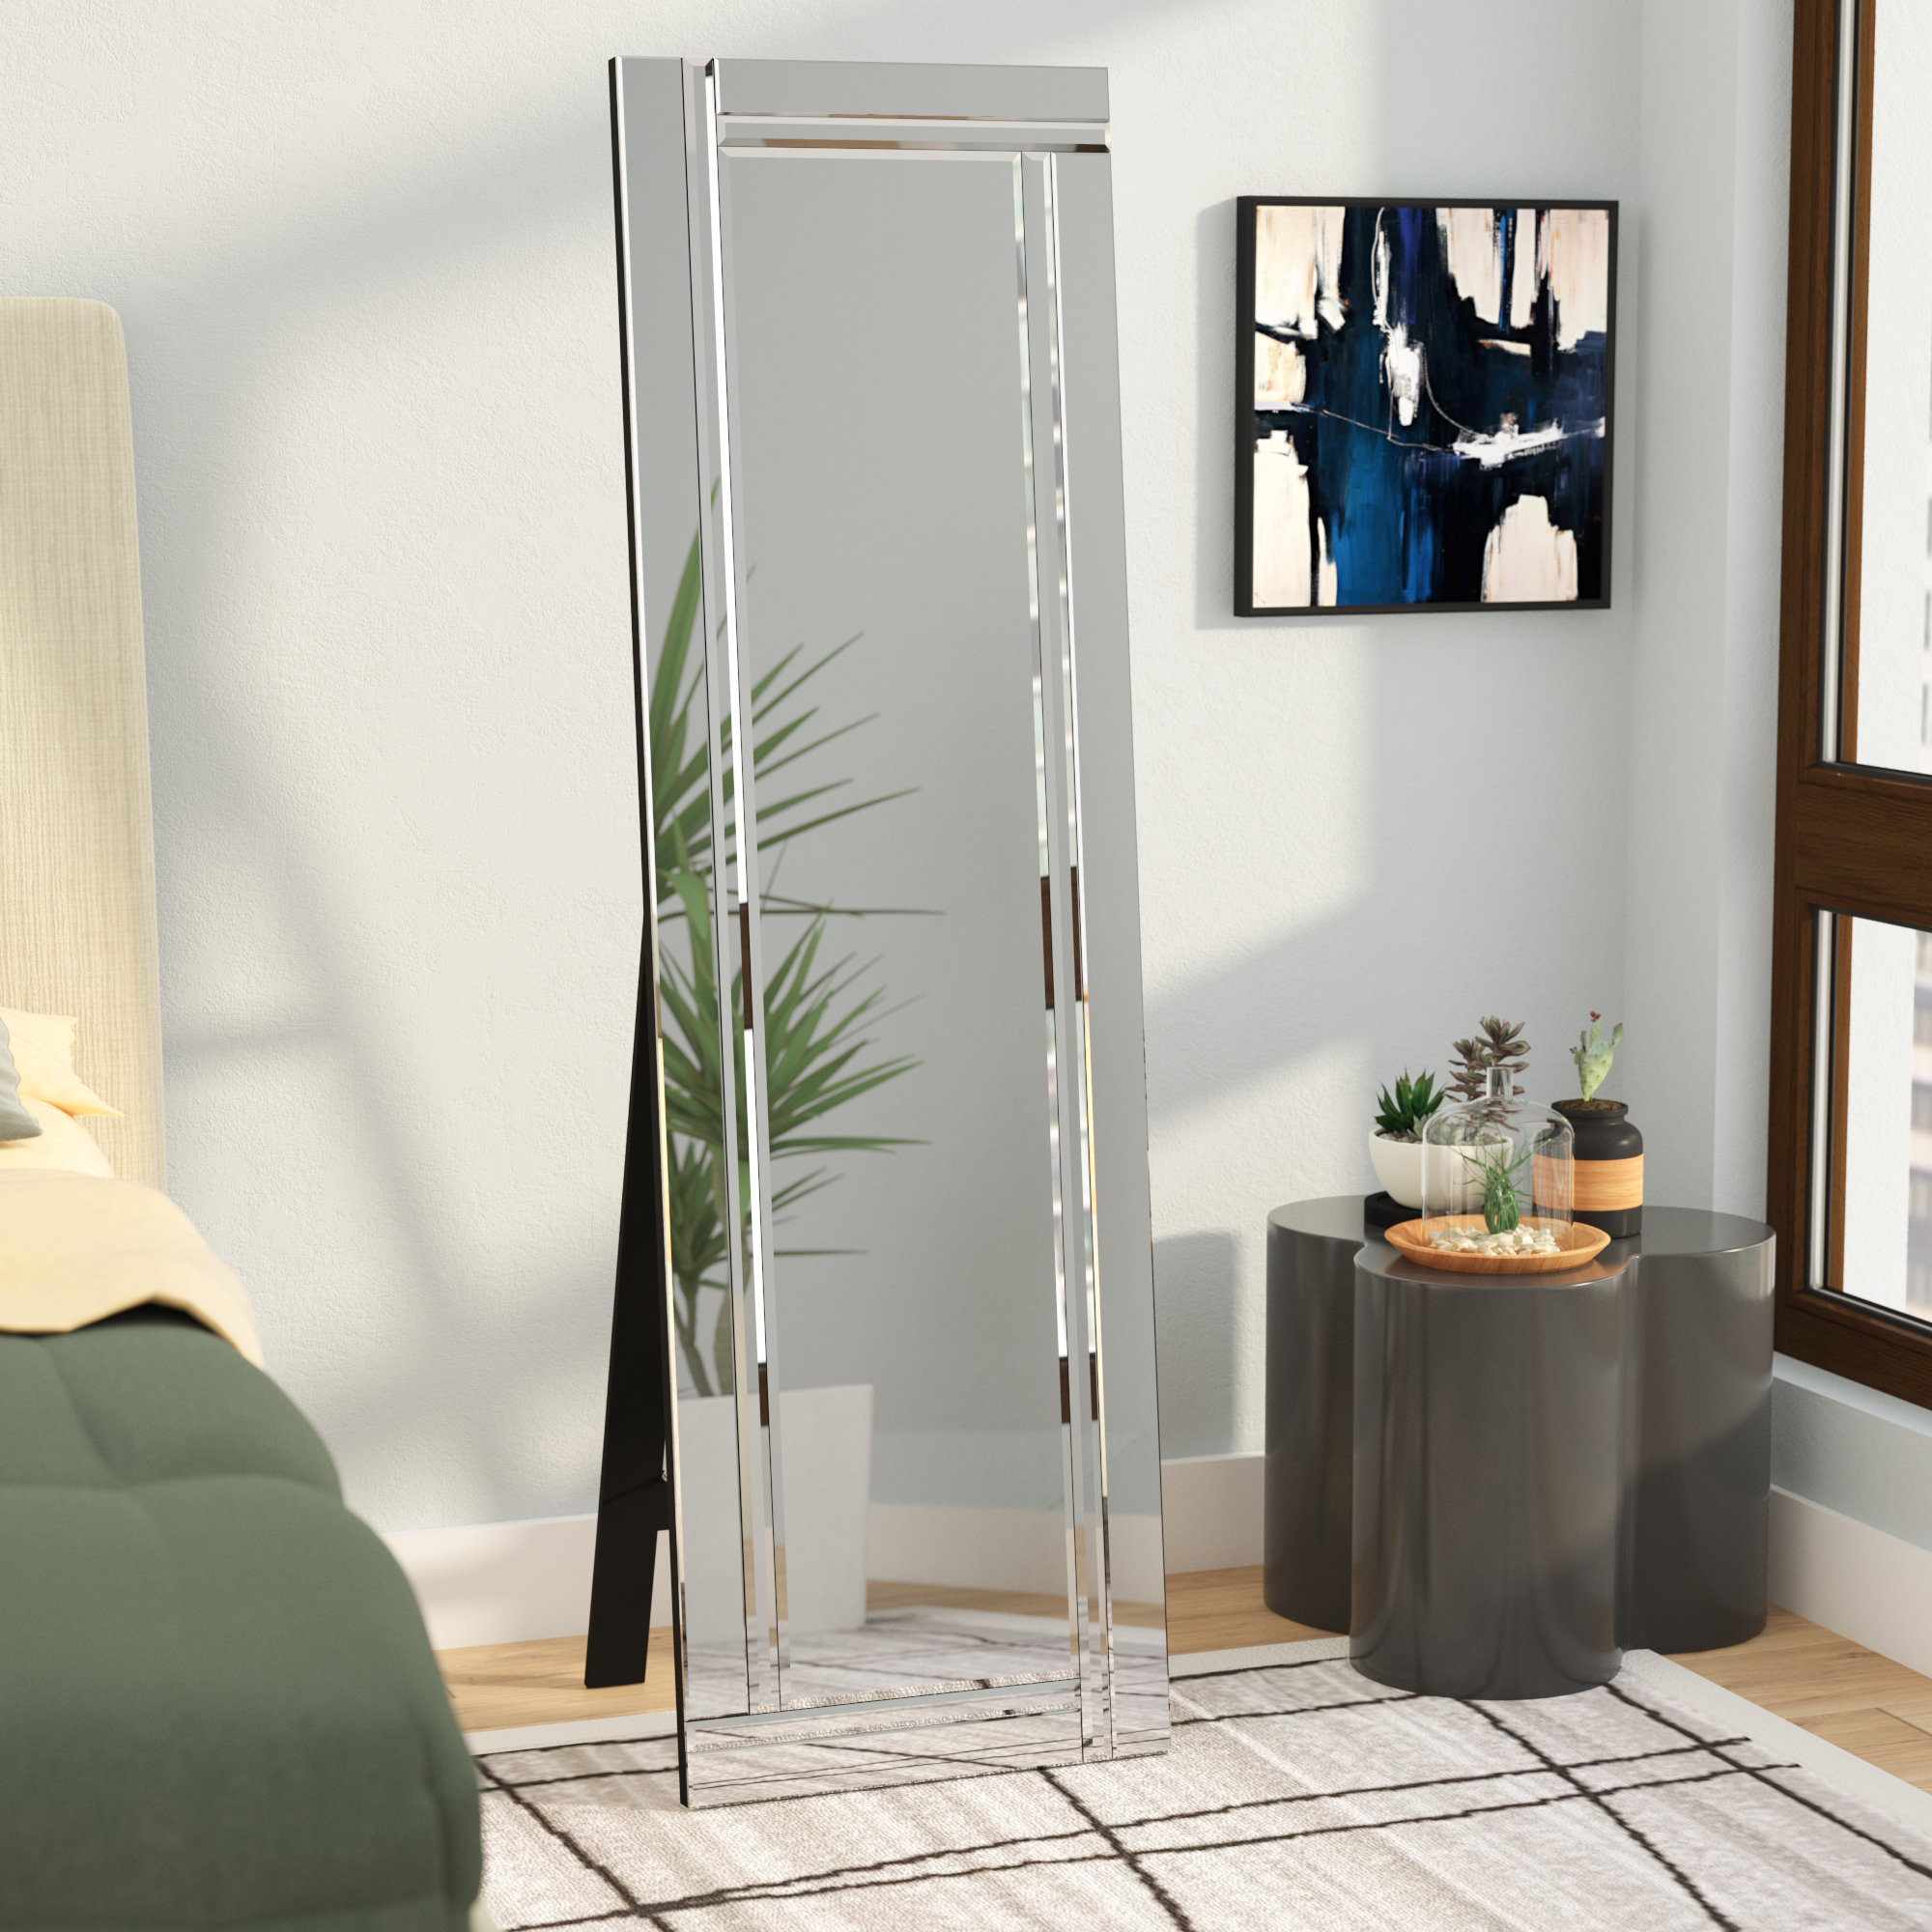 Exciting Full Wall Mirror Design Clos Designer Modern Colorful Ideas With Regard To Most Popular Entire Wall Mirrors (View 14 of 20)